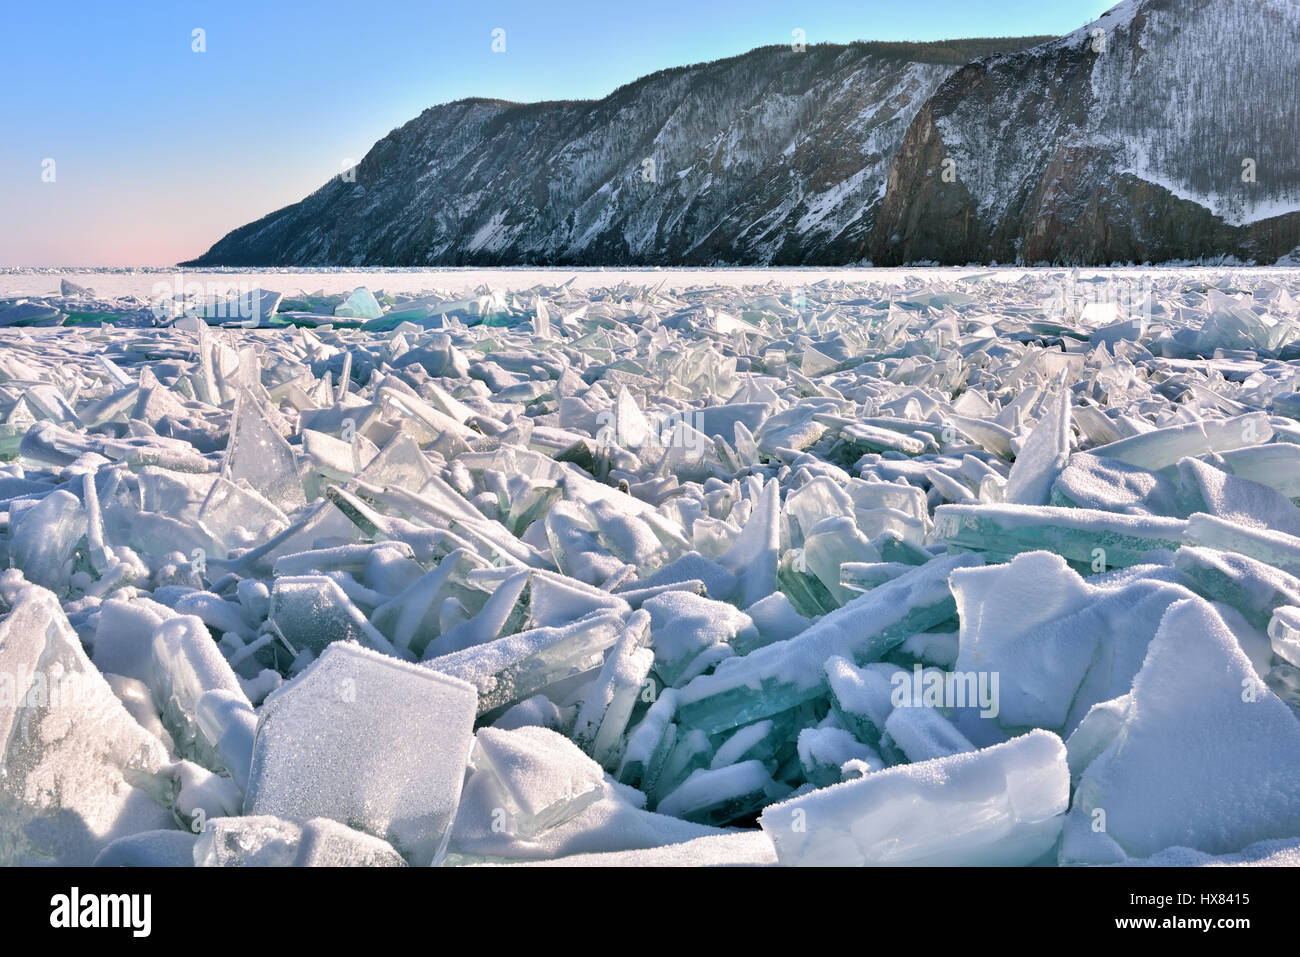 Pile of large fragments of ice. Hummocks occurred as a result of destruction of ice by wind at freeze-up. Lake Baikal. - Stock Image